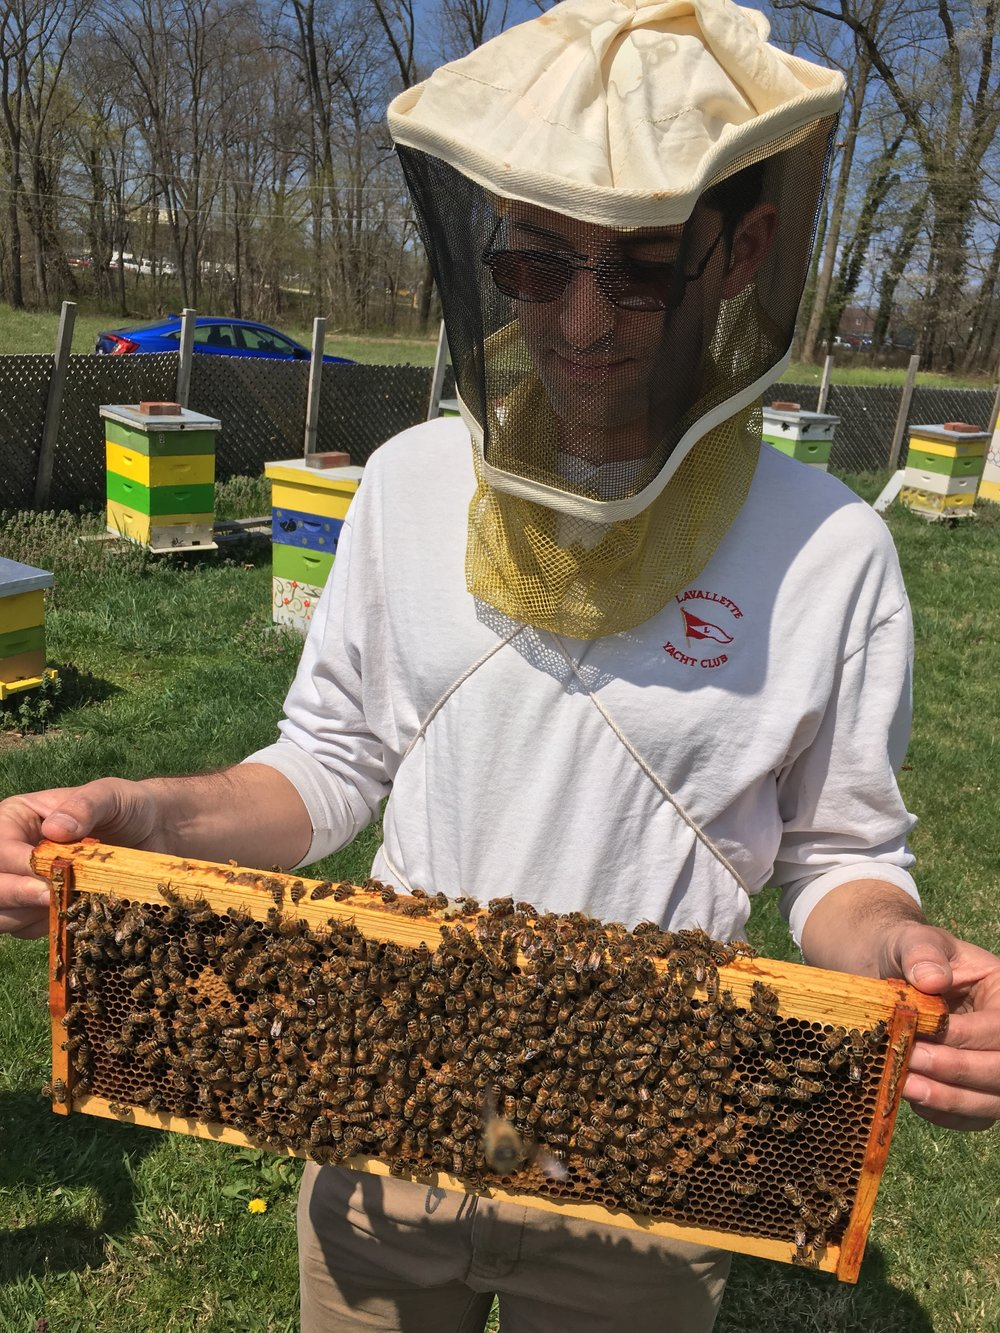 Alex Maio - Alex helps with maintaining our colonies of bees and product processing. He also is our carpenter and is helping build hive equipment.Professionally, Alex works in IT and has been a professional jazz musician for the past decade. He spends a significant amount of time fishing and jazzing.